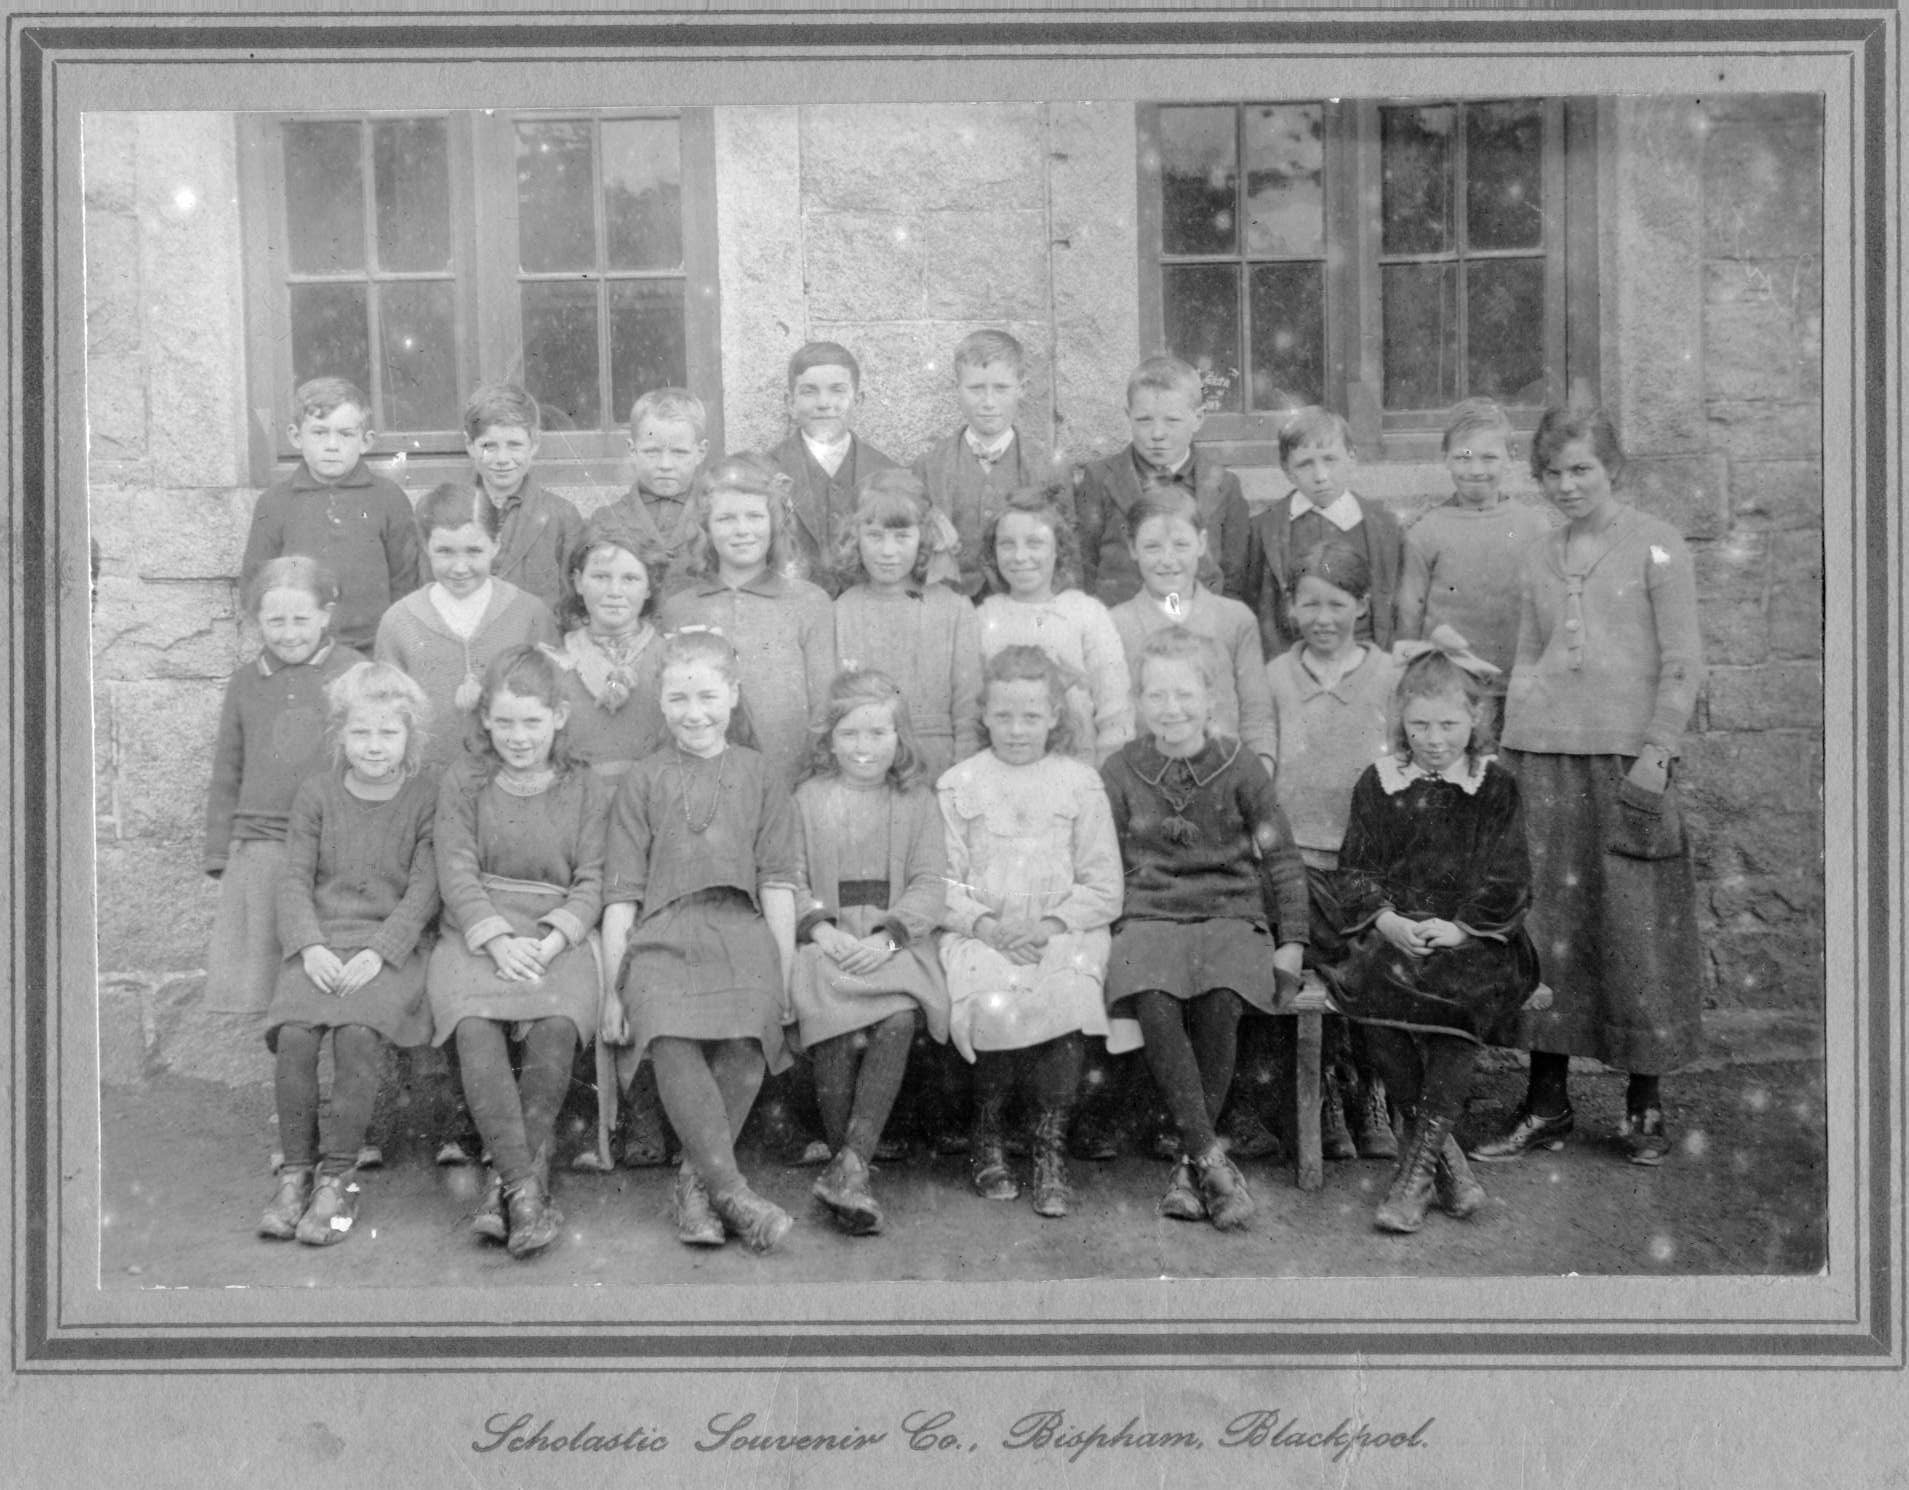 A very old school photo from Kirkbean